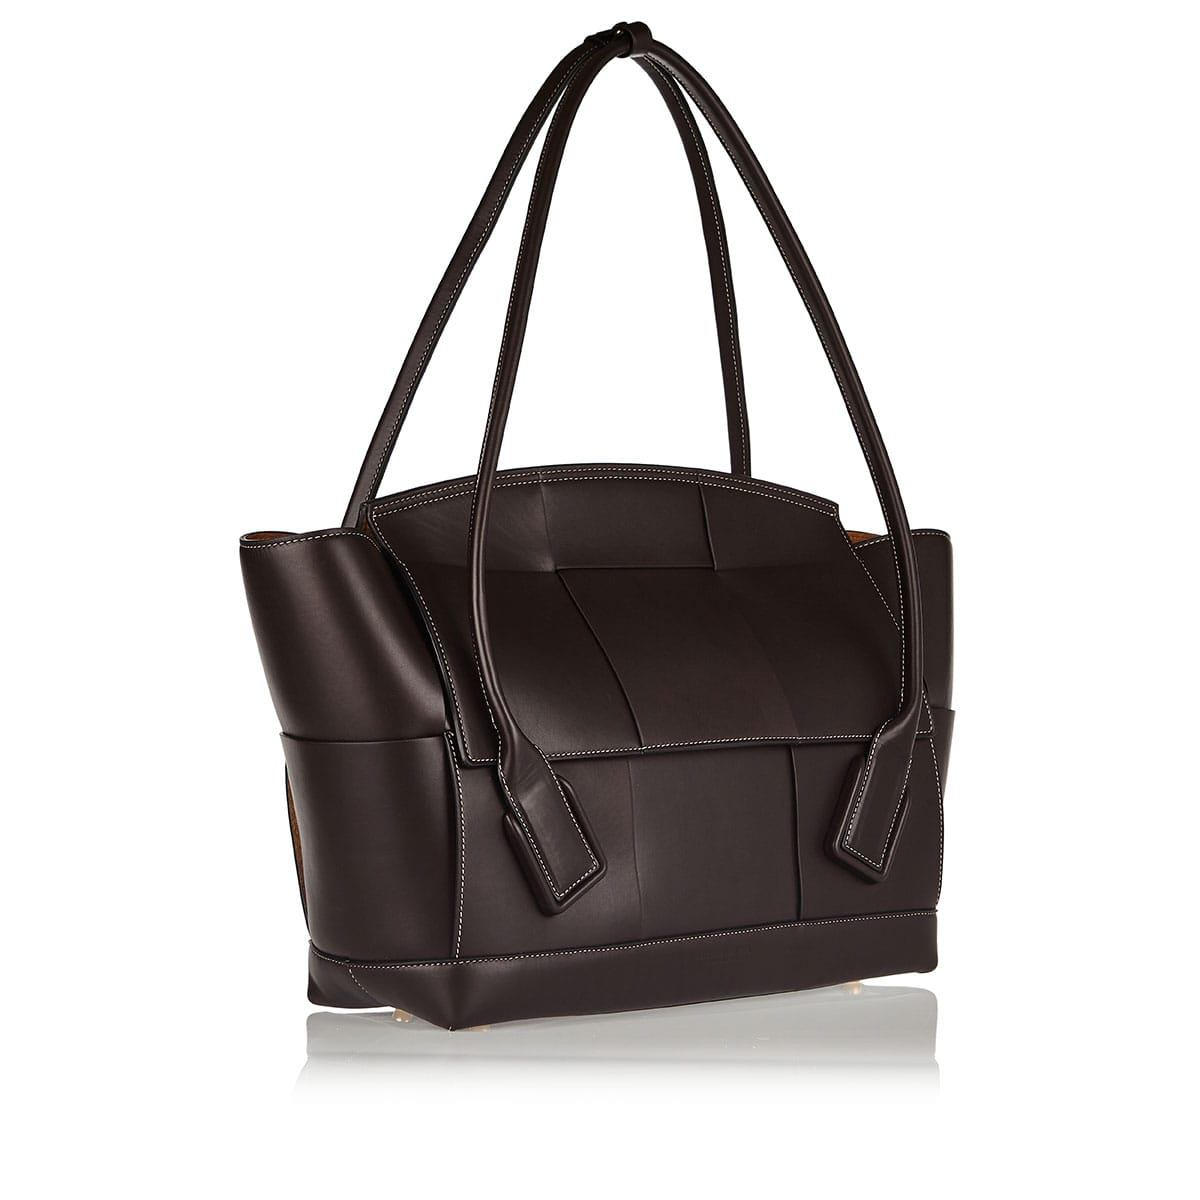 Arco 56 leather bag